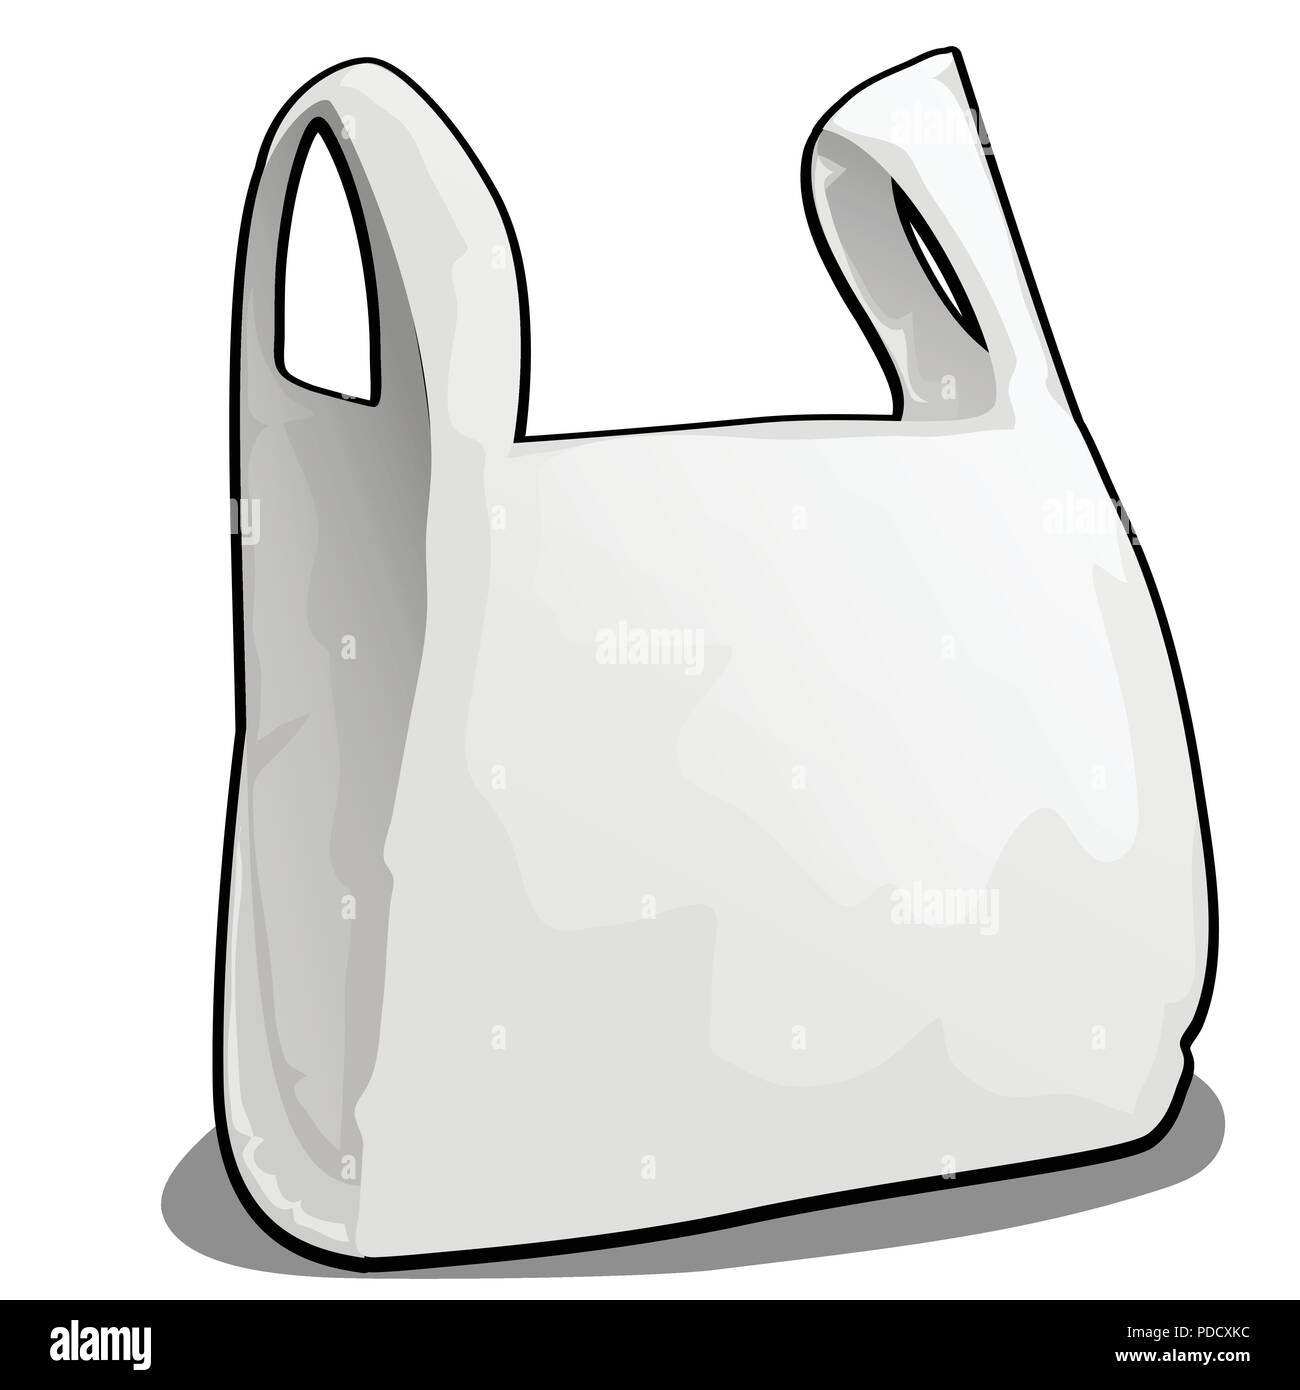 A Plastic Bag Of White Color Isolated On White Background Vector Cartoon Close Up Illustration Stock Vector Image Art Alamy